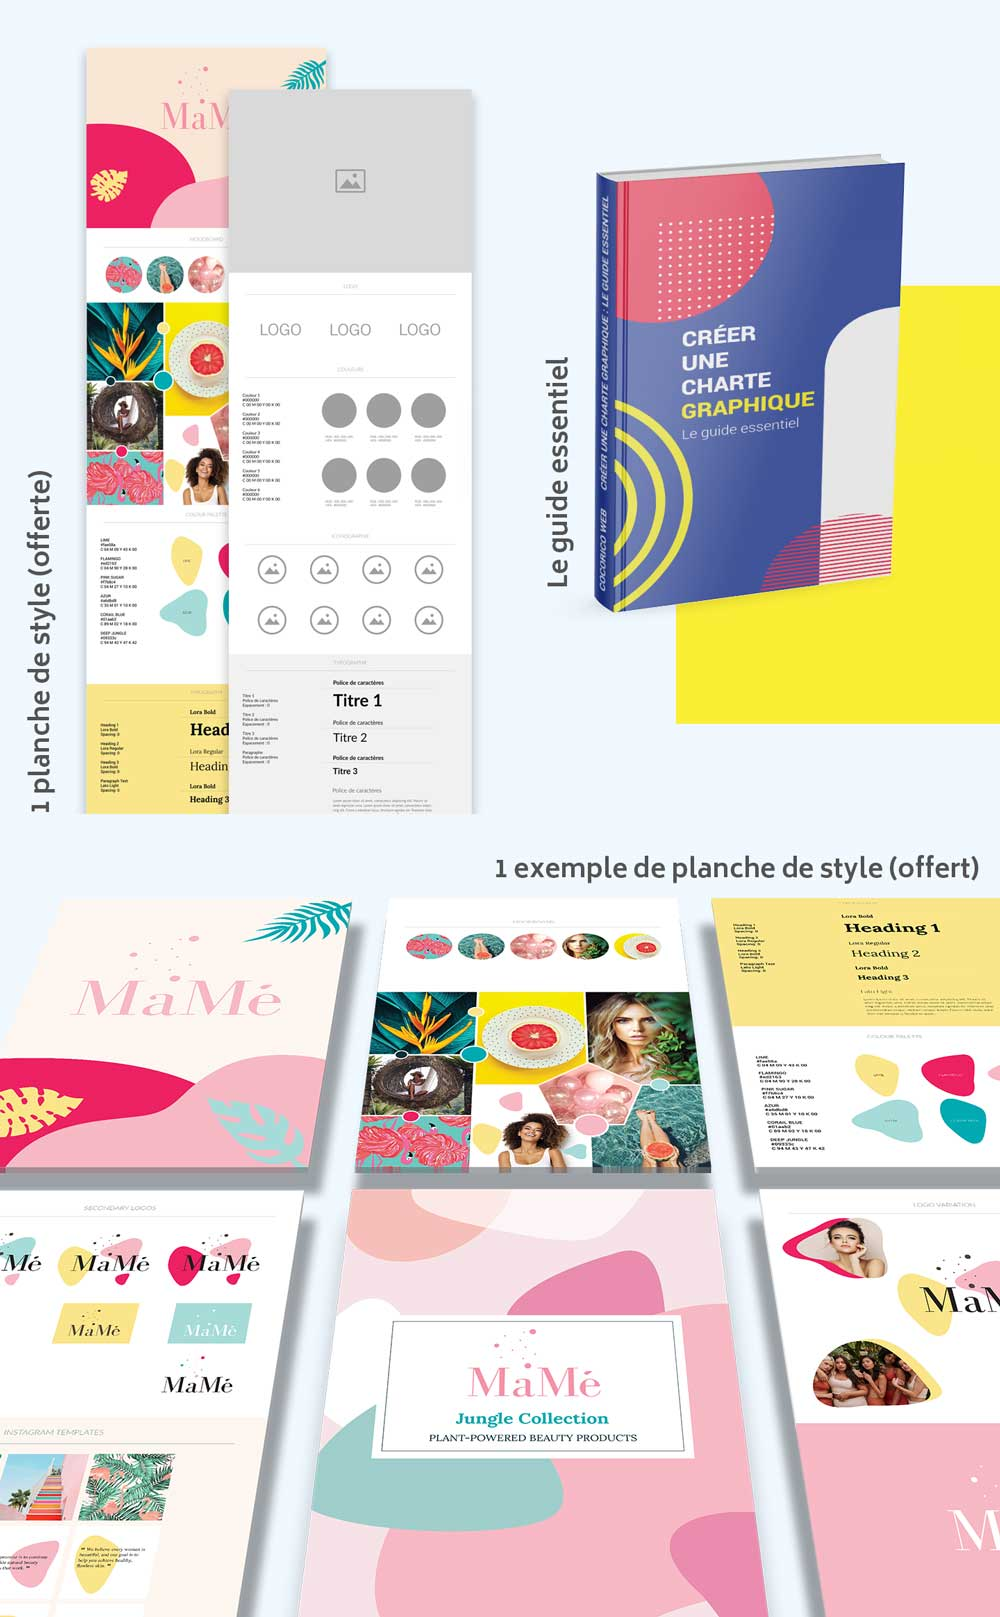 guide-charte-graphique-long-notitle-11-23-420